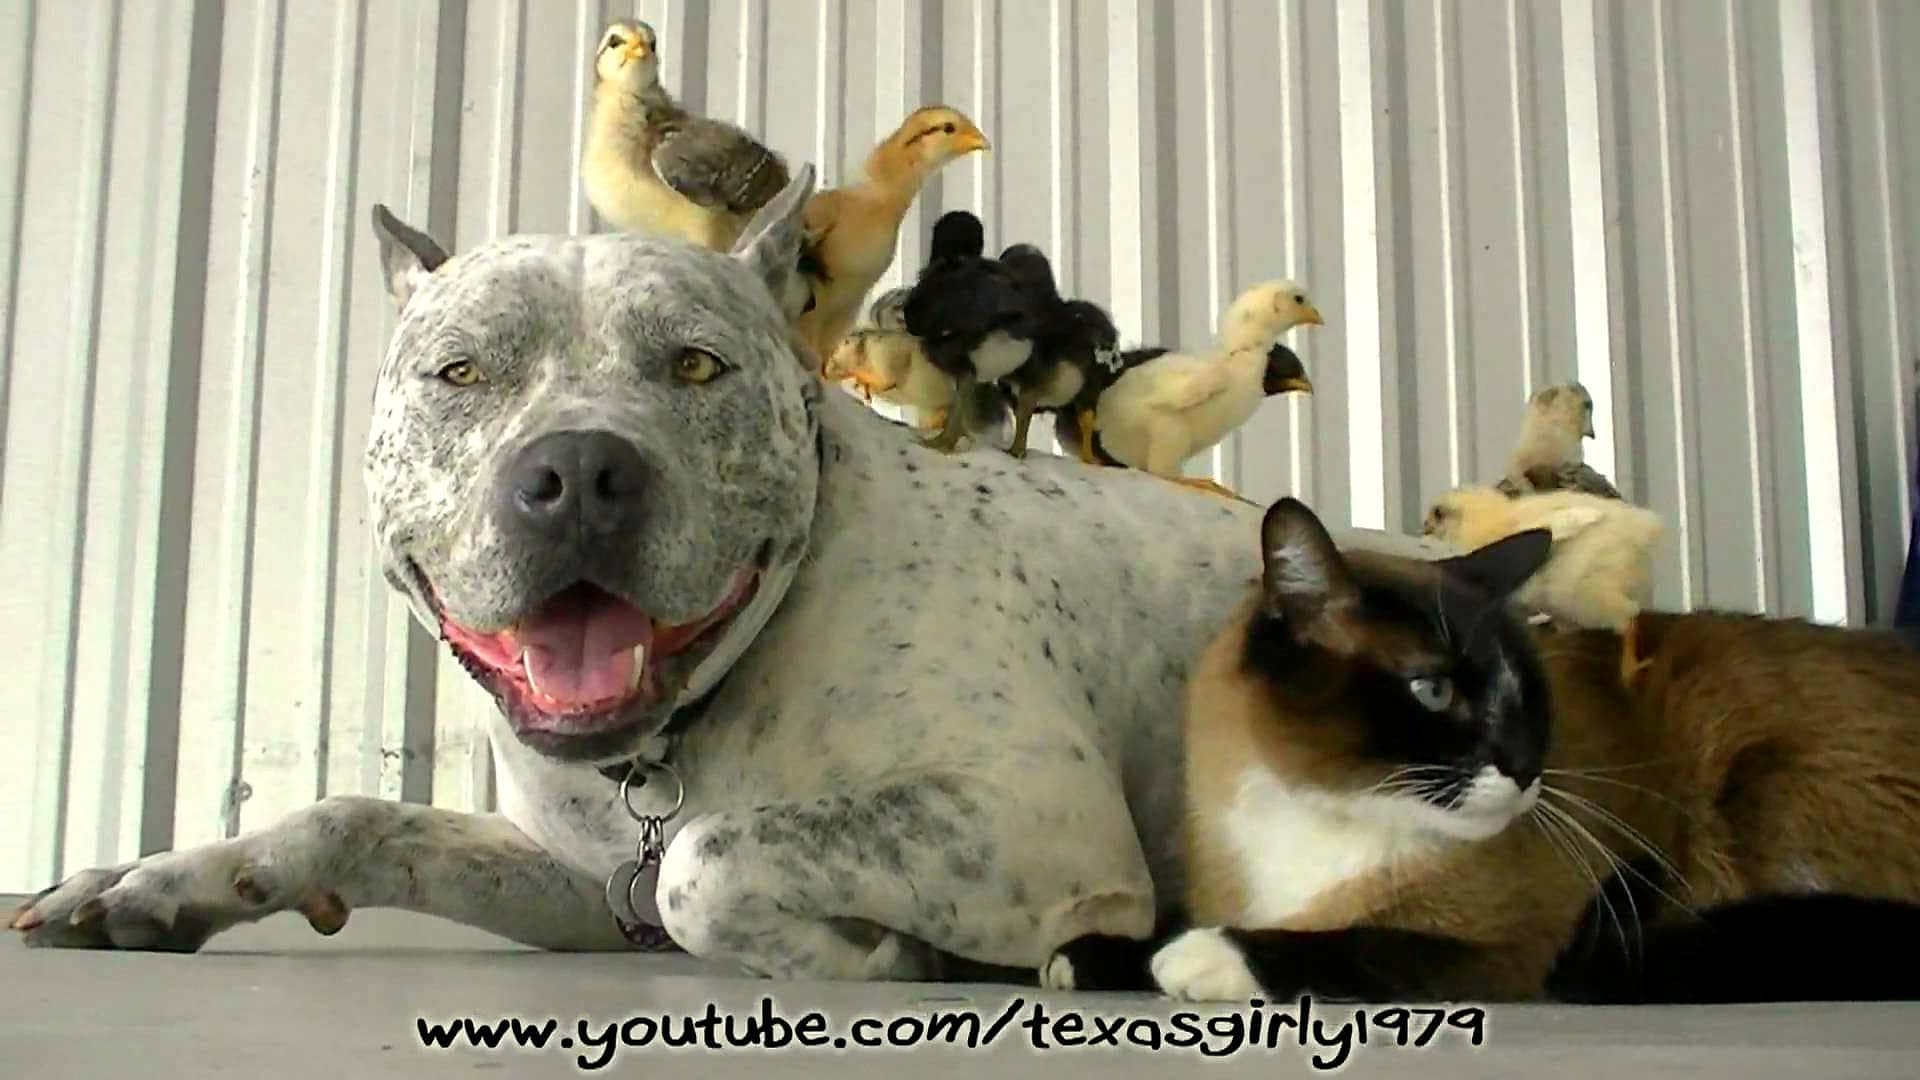 Animal Odd Couples Youtube beautiful photos of dogs loving their baby animal friends